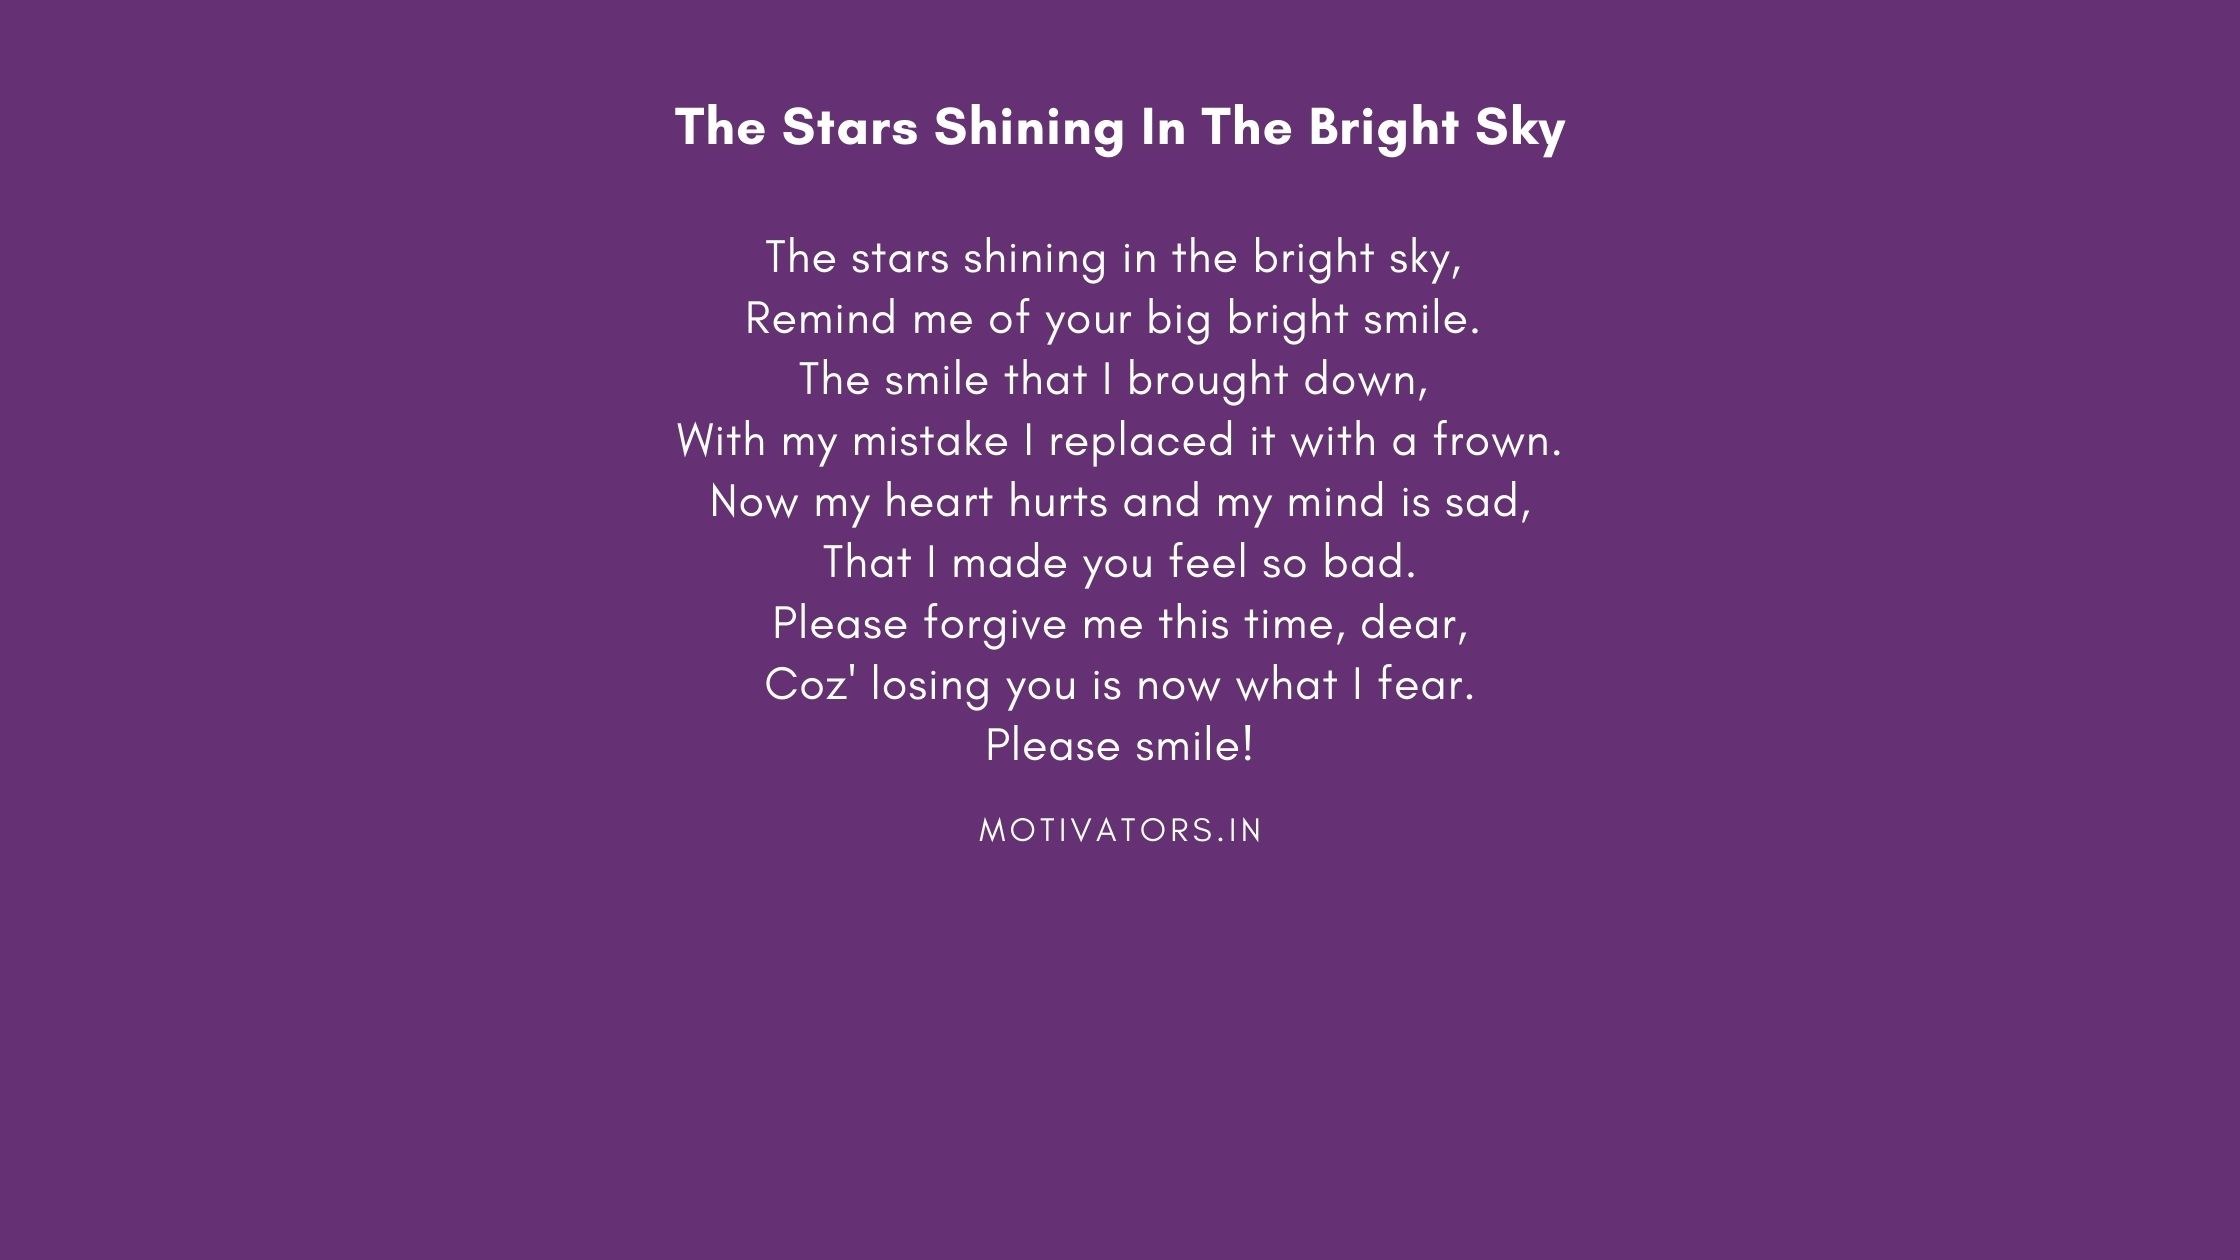 The Stars Shining In The Bright Sky